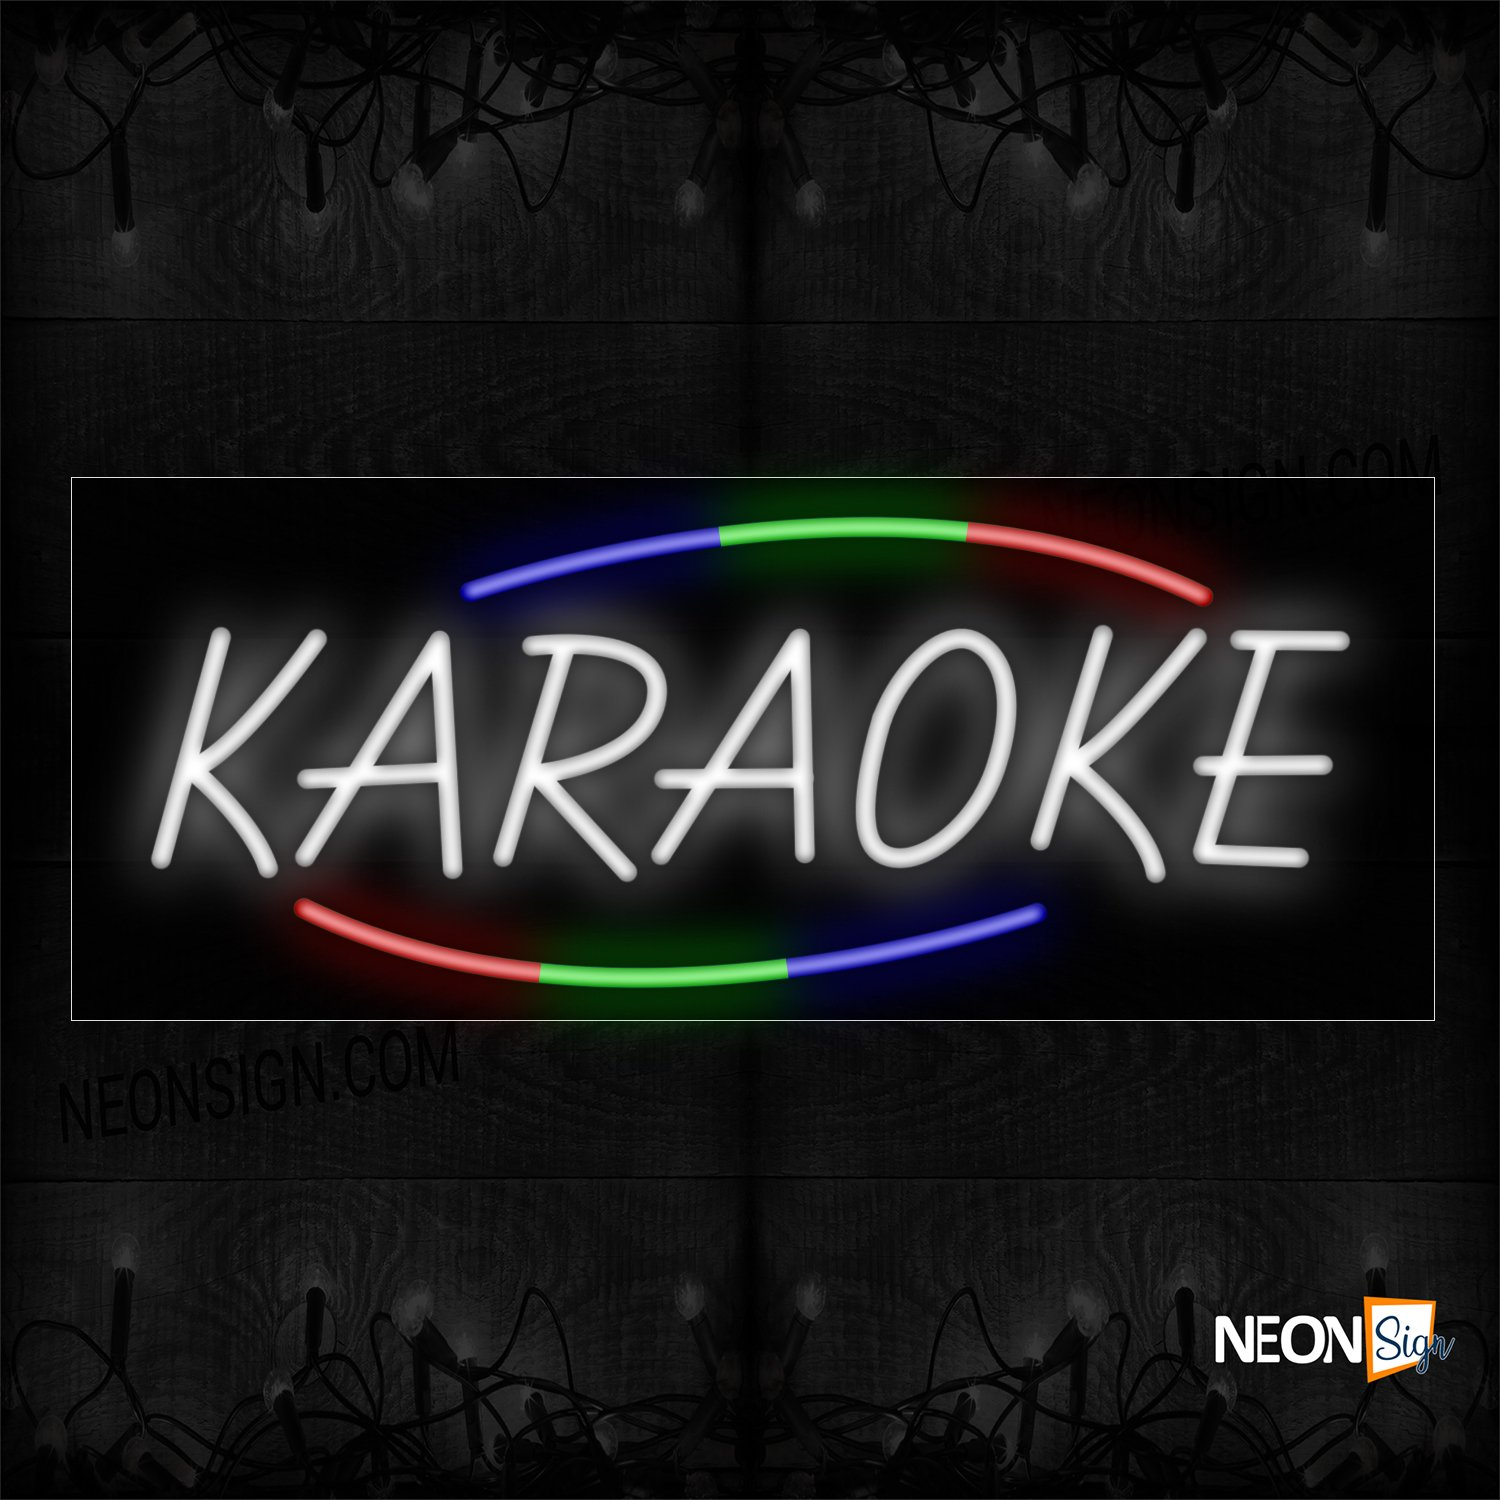 Image of 10820 Karaoke In White With Colorful Arc Border Neon Sign_13x32 Black Backing